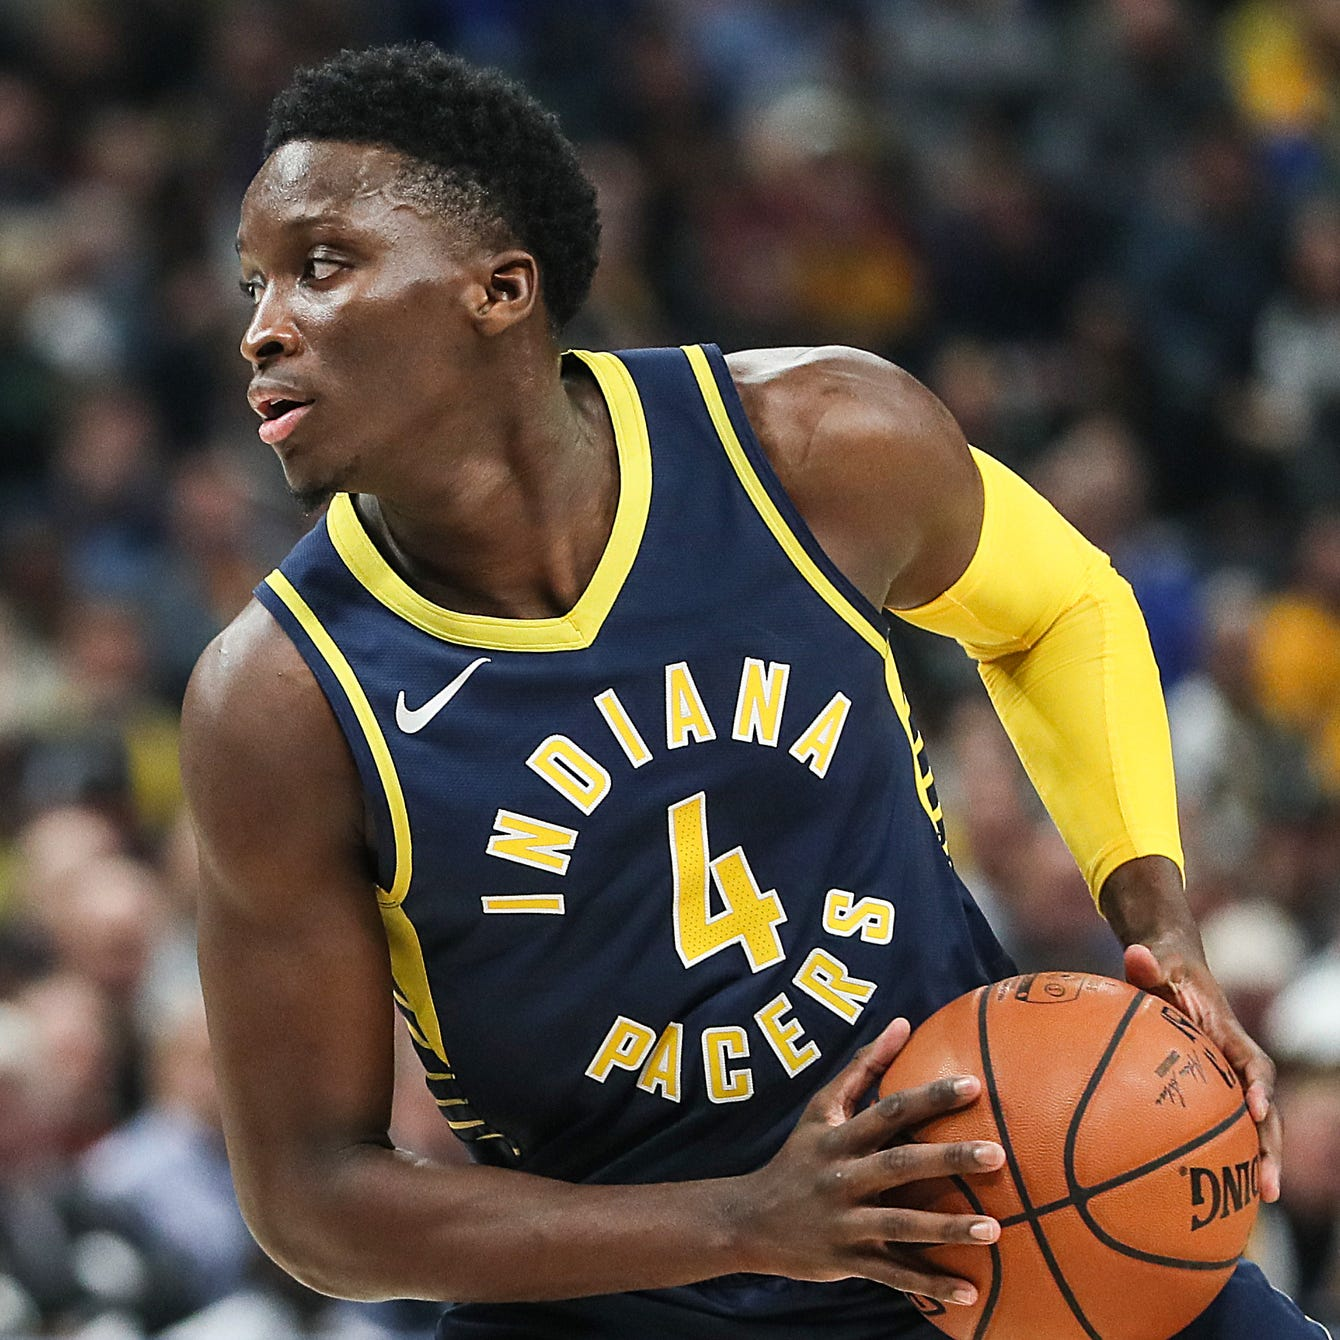 Victor Oladipo injury timeline: How the Pacers star is recovering